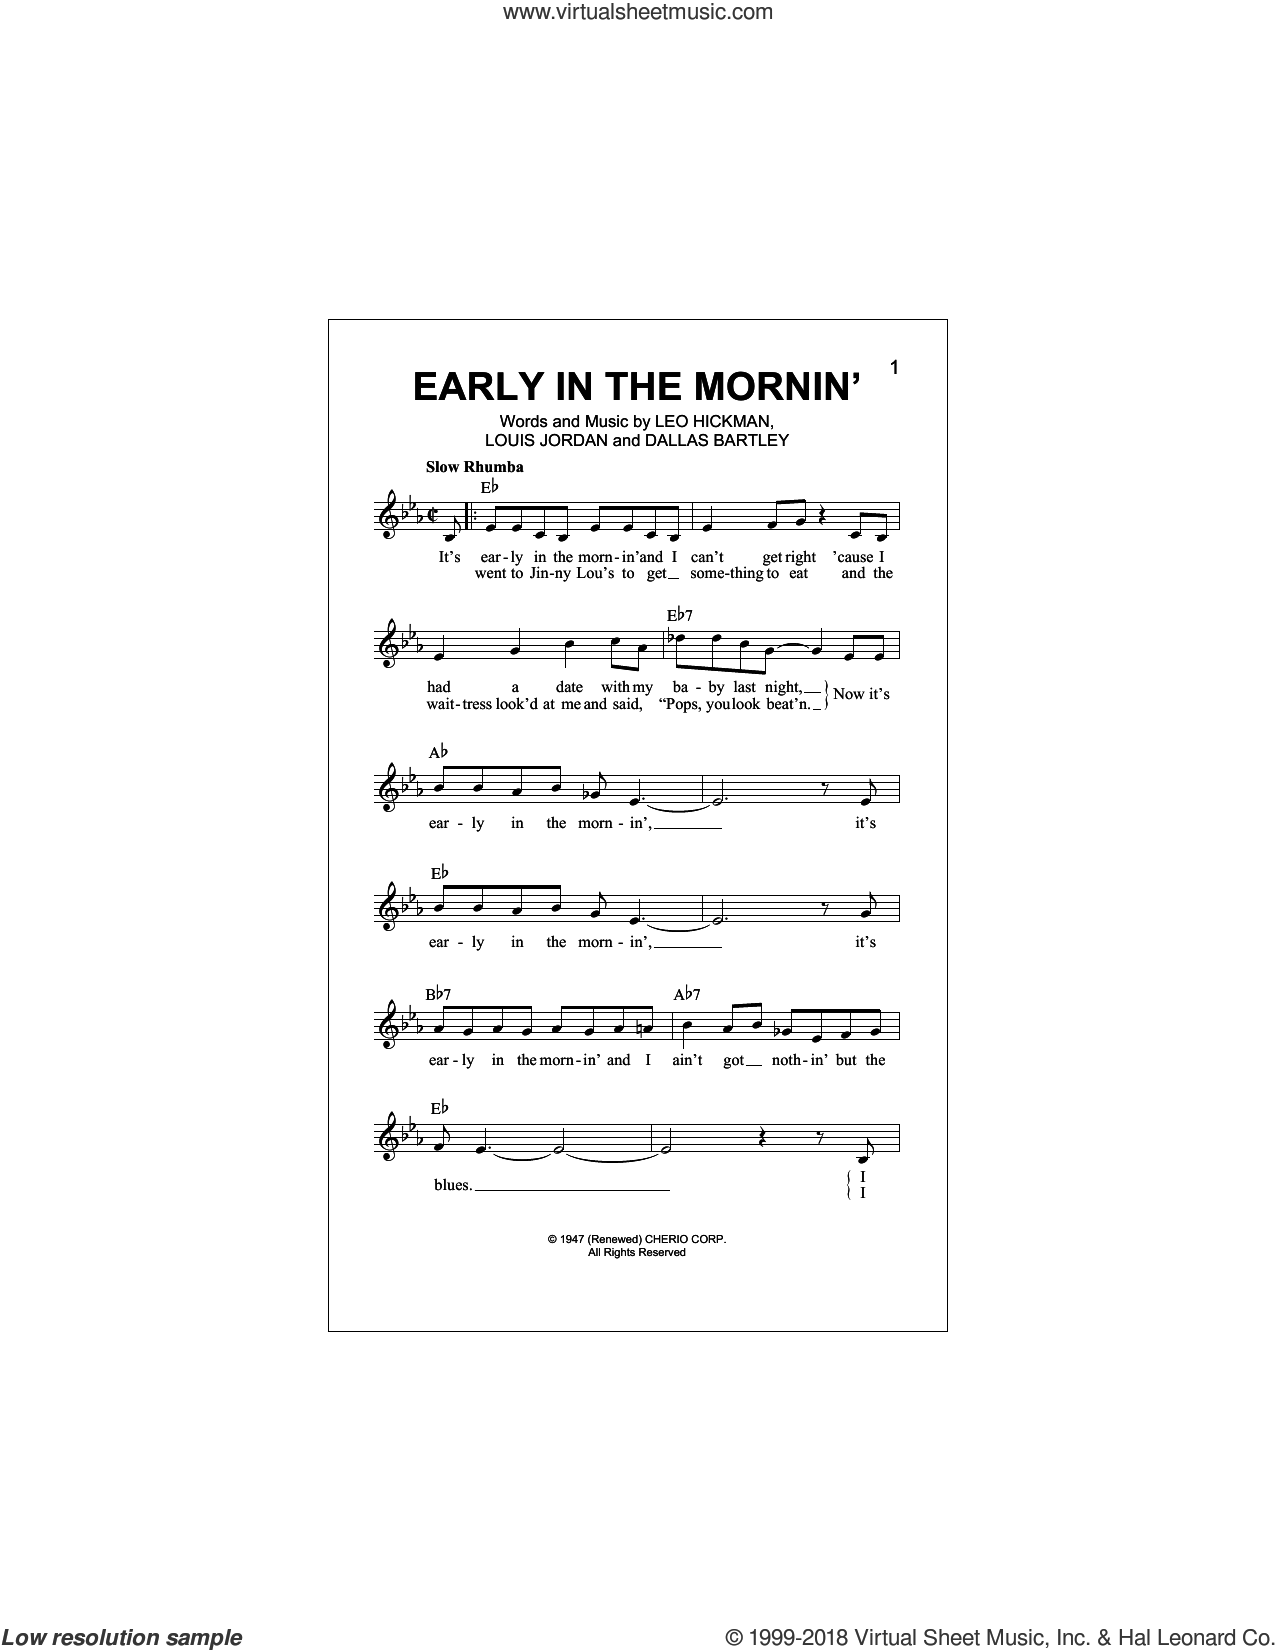 Early In The Mornin' sheet music for voice and other instruments (fake book) by Buddy Guy, Dallas Bartley, Leo Hickman and Louis Jordan, intermediate skill level